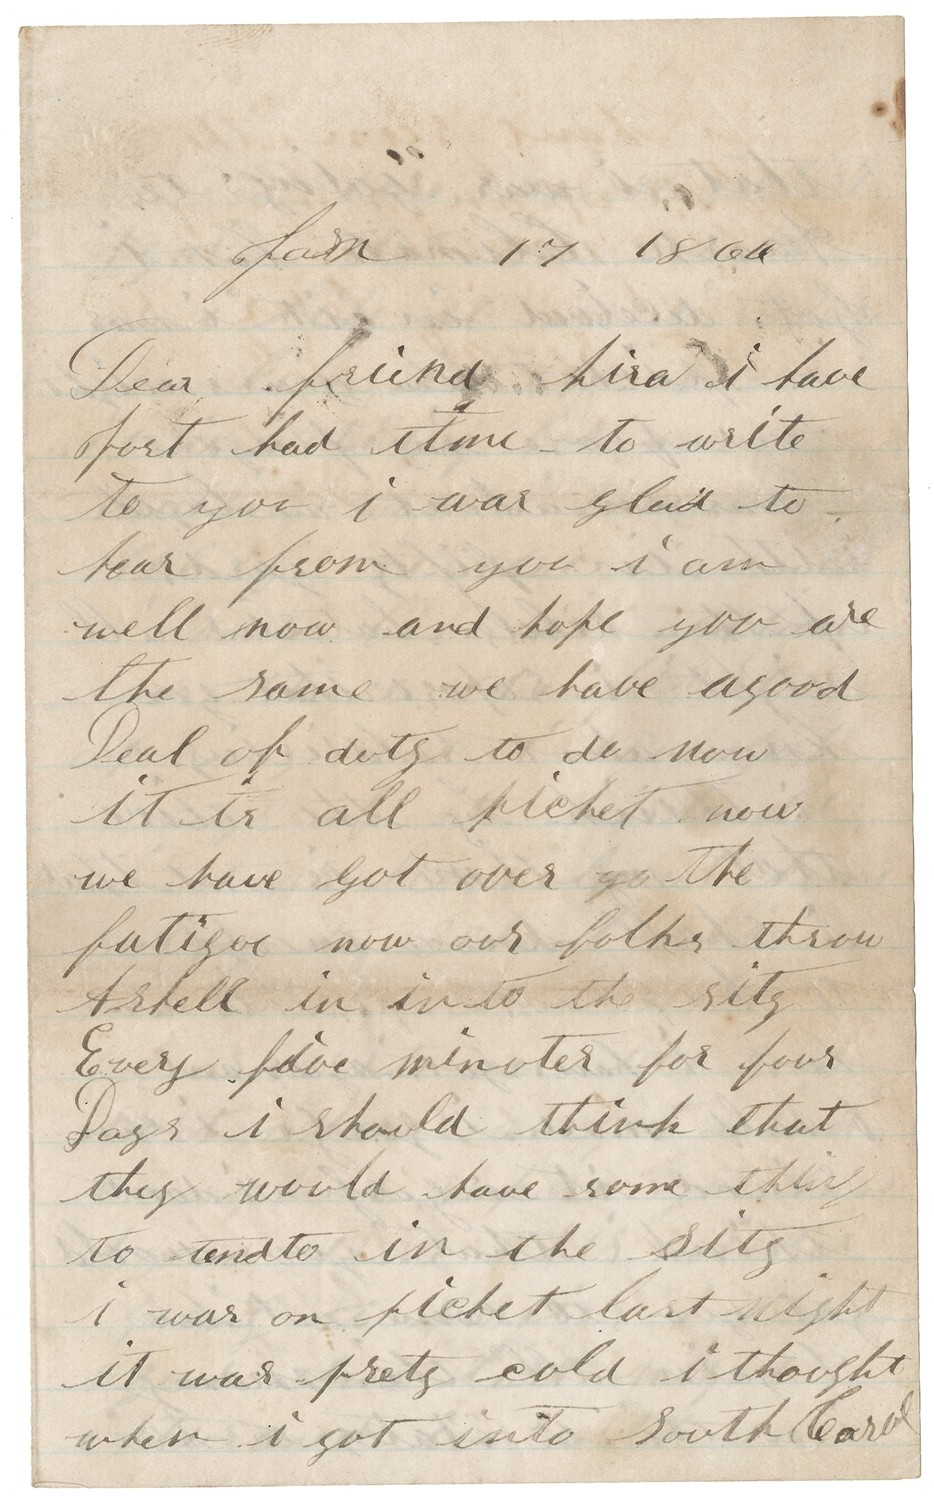 CIVIL WAR SOLDIER LETTER – PARLEY S. YOUNG, 4TH NEW  HAMPSHIRE INFANTRY; DIED OF WOUNDS IN NOVEMBER 1/864